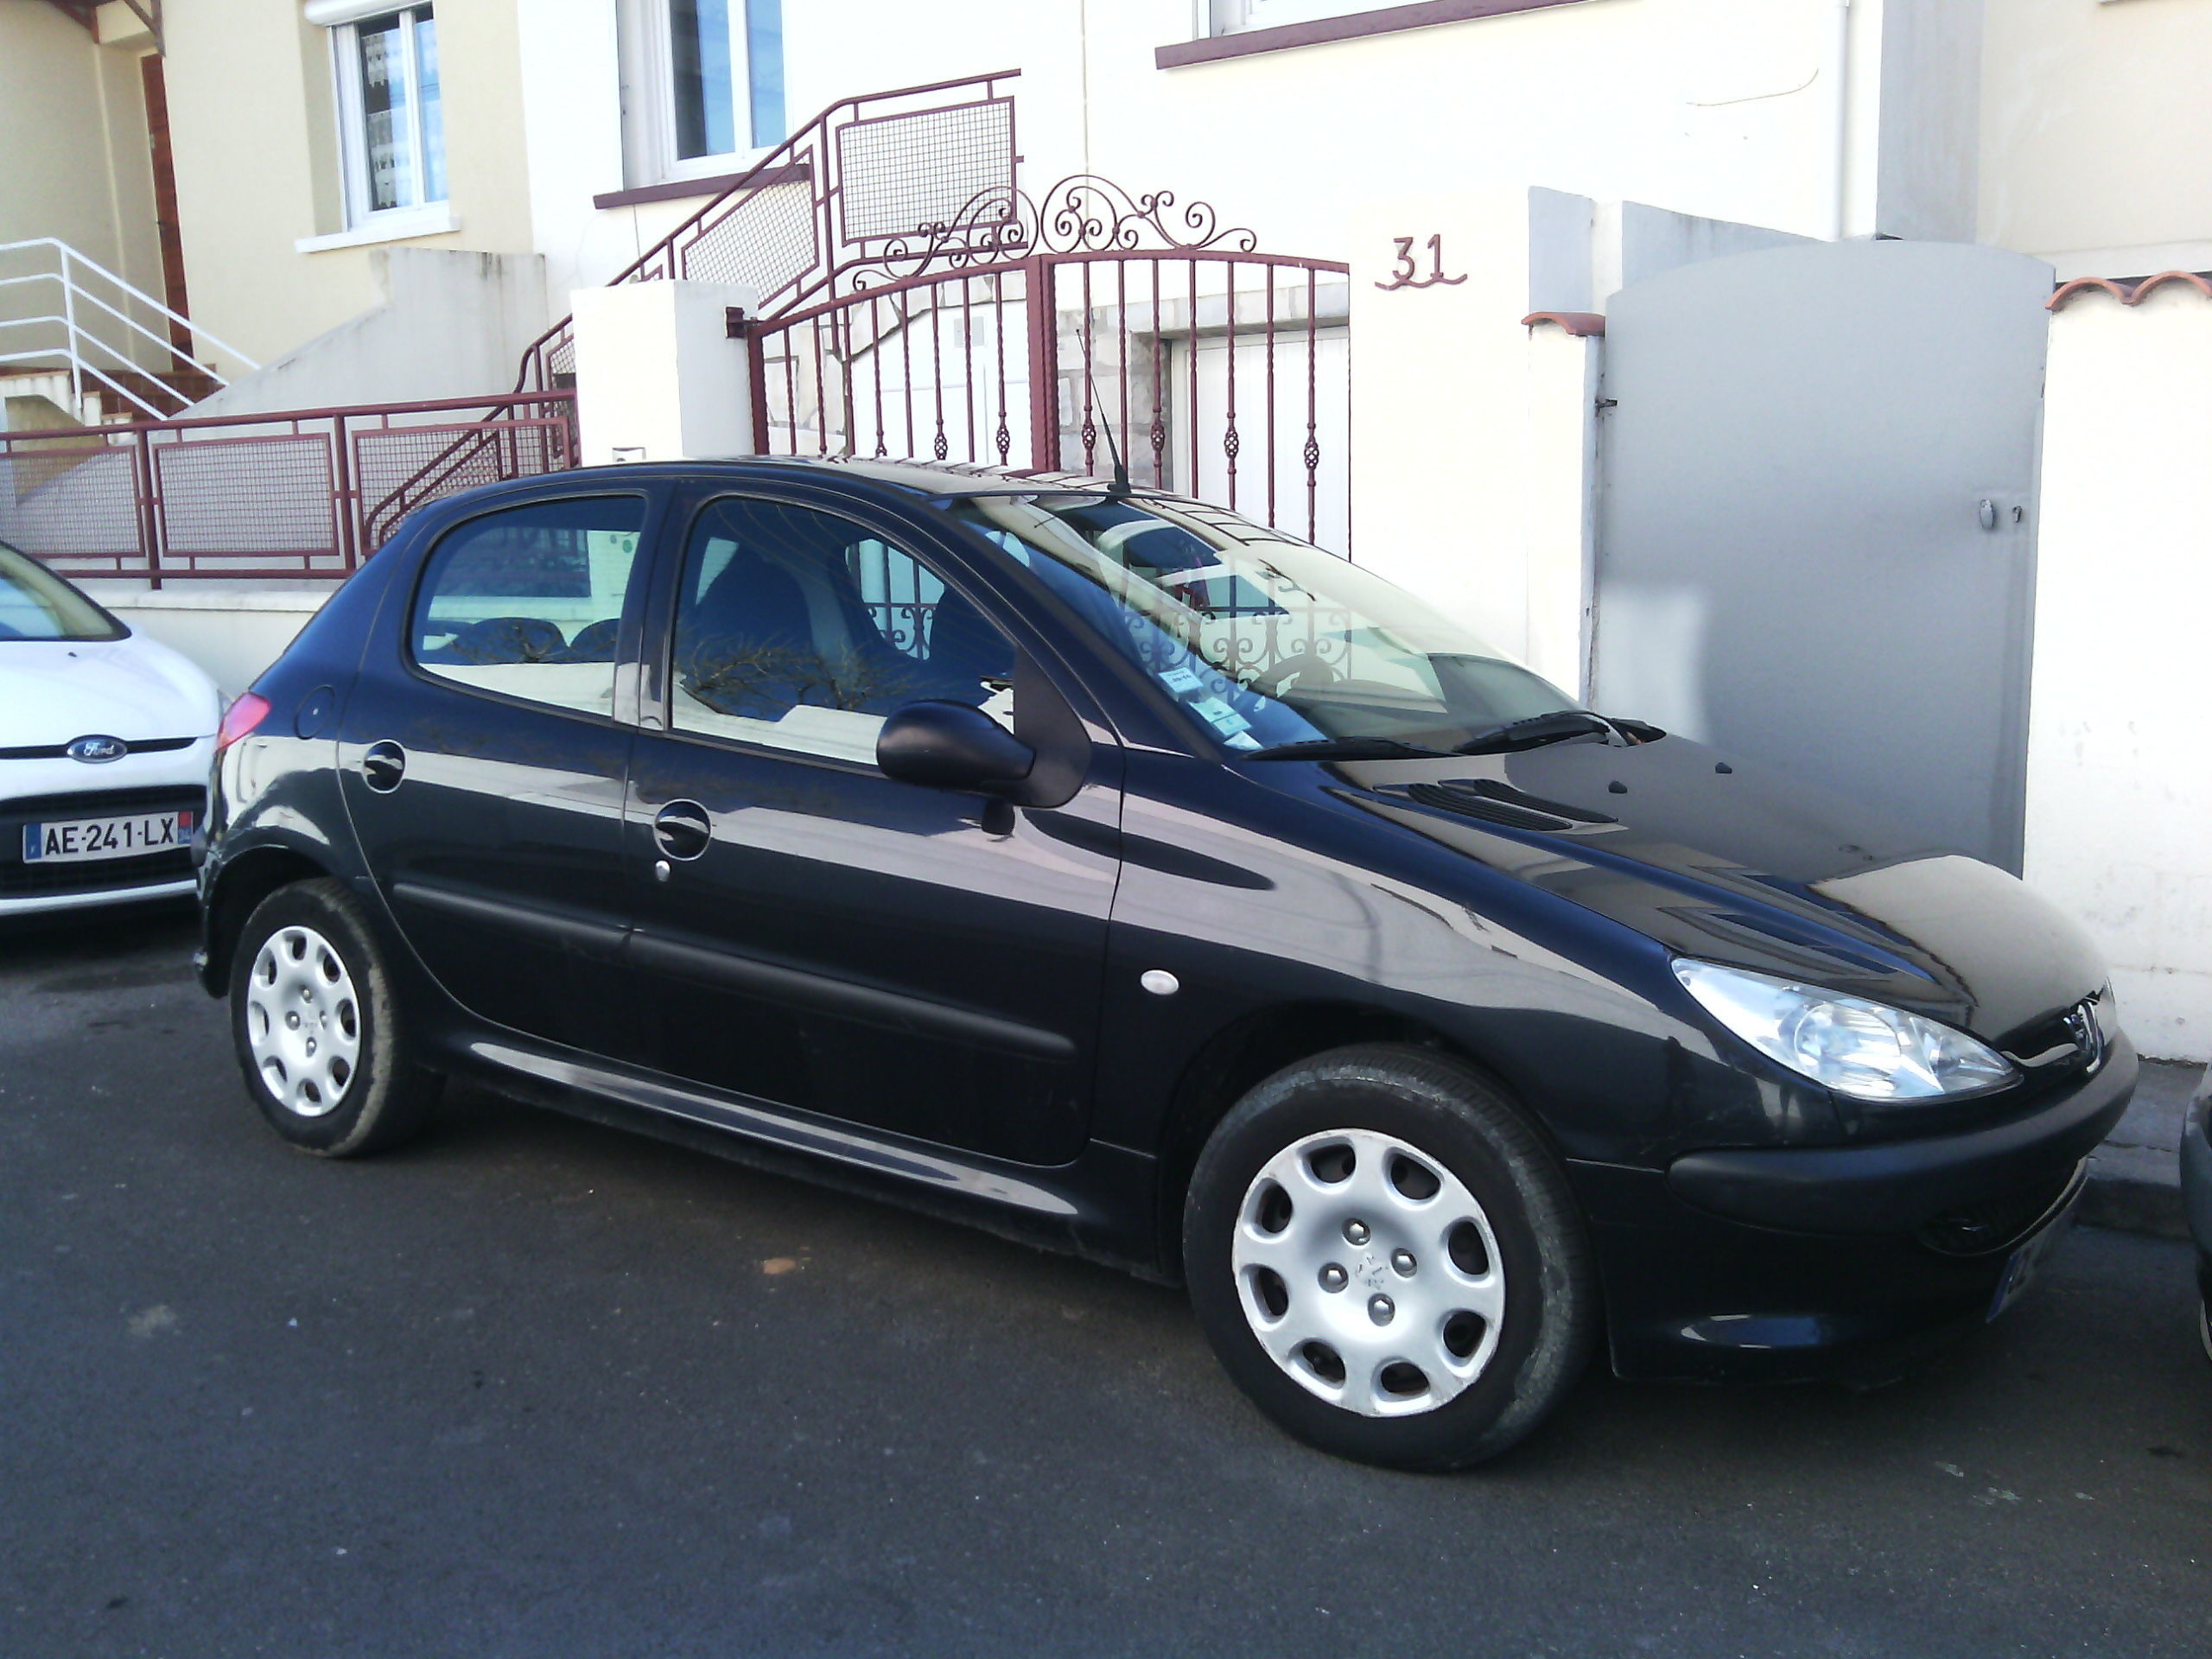 Location voiture peugeot 206 for Location voiture garage peugeot